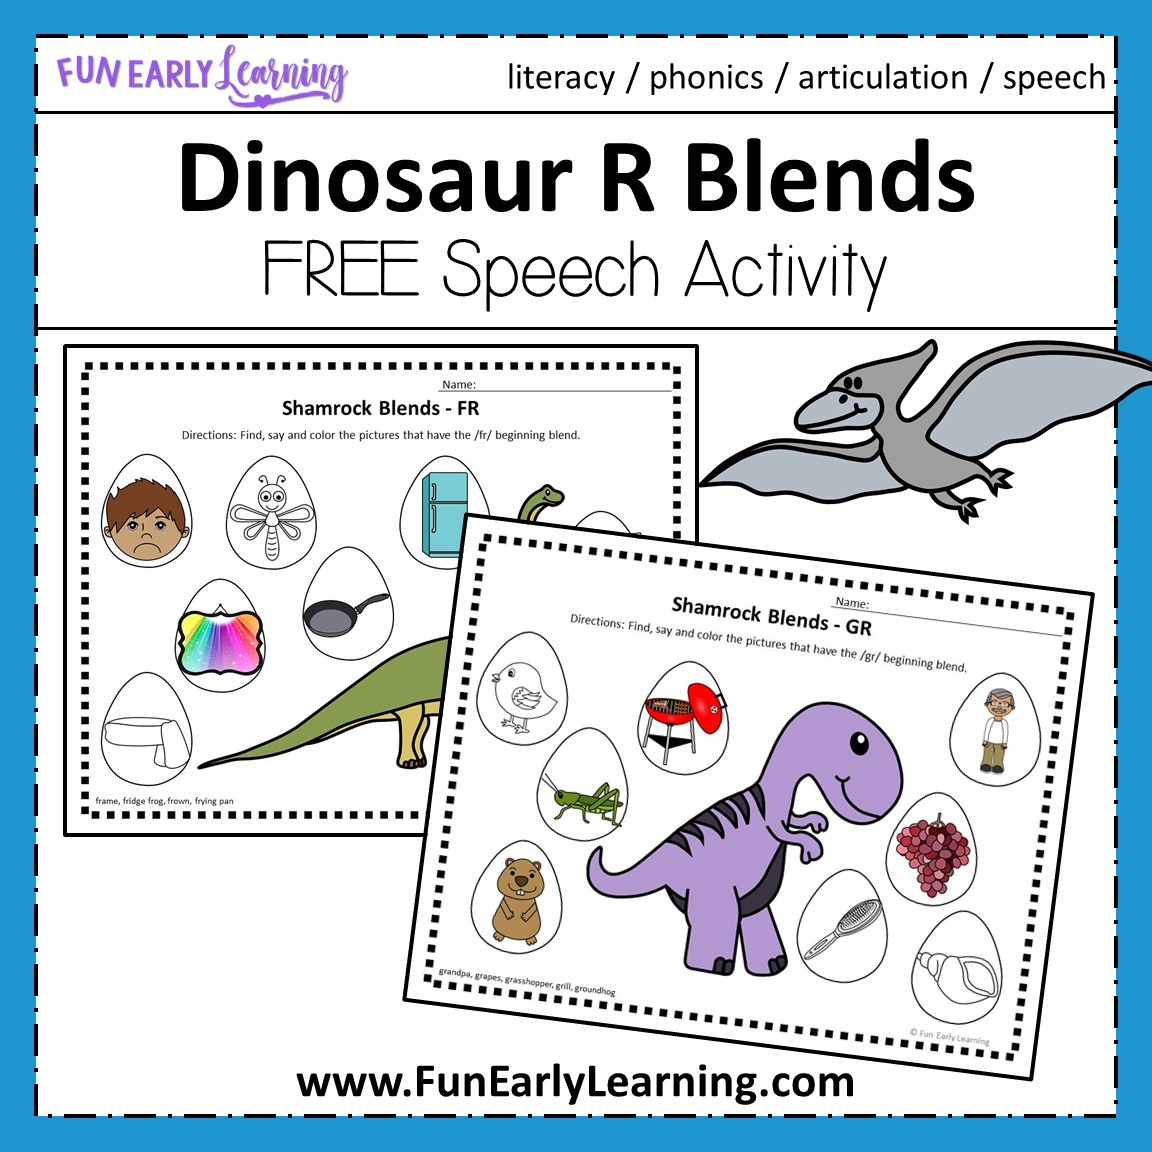 Dinosaur R Blends Articulation Speech Activity For